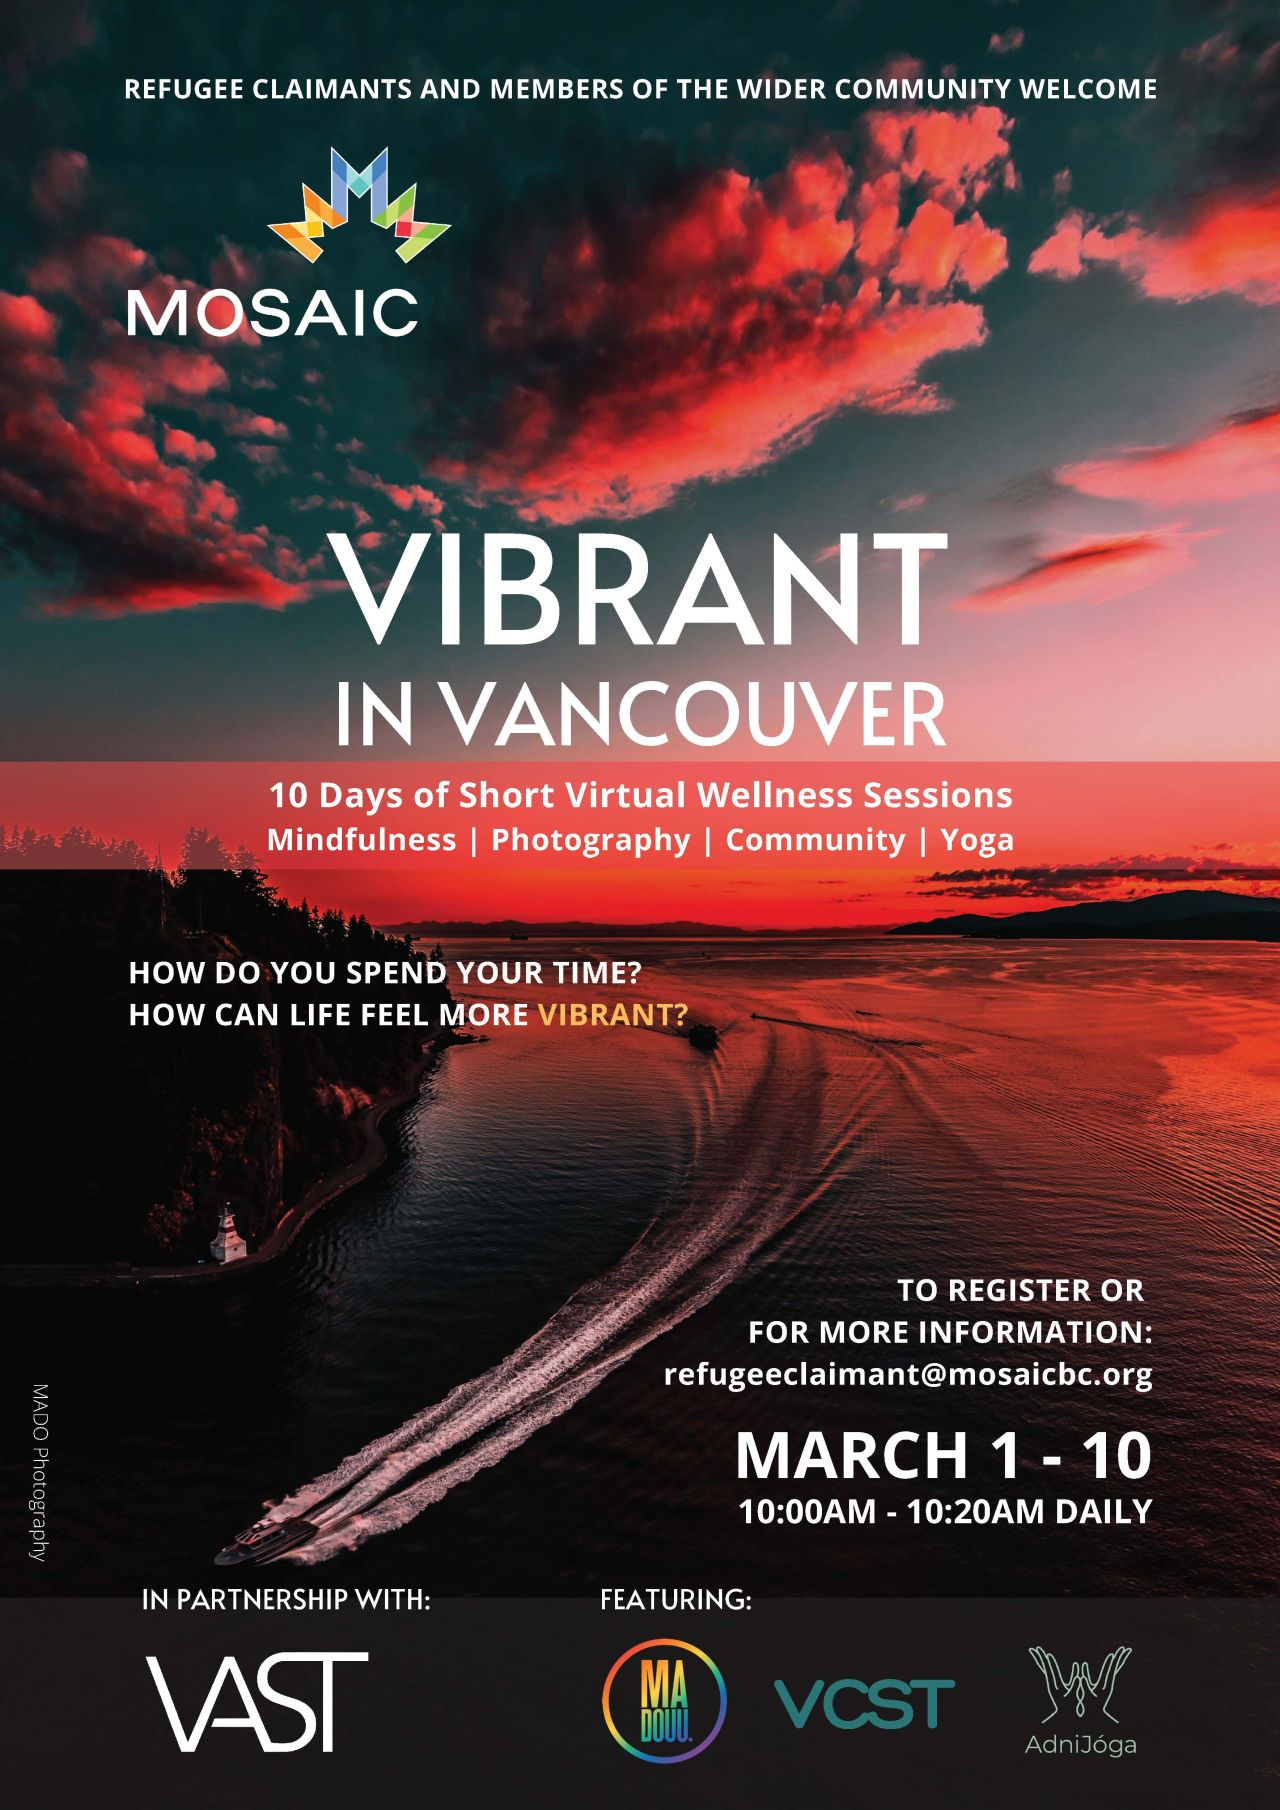 Vibrant in Vancouver, by MOSAIC.